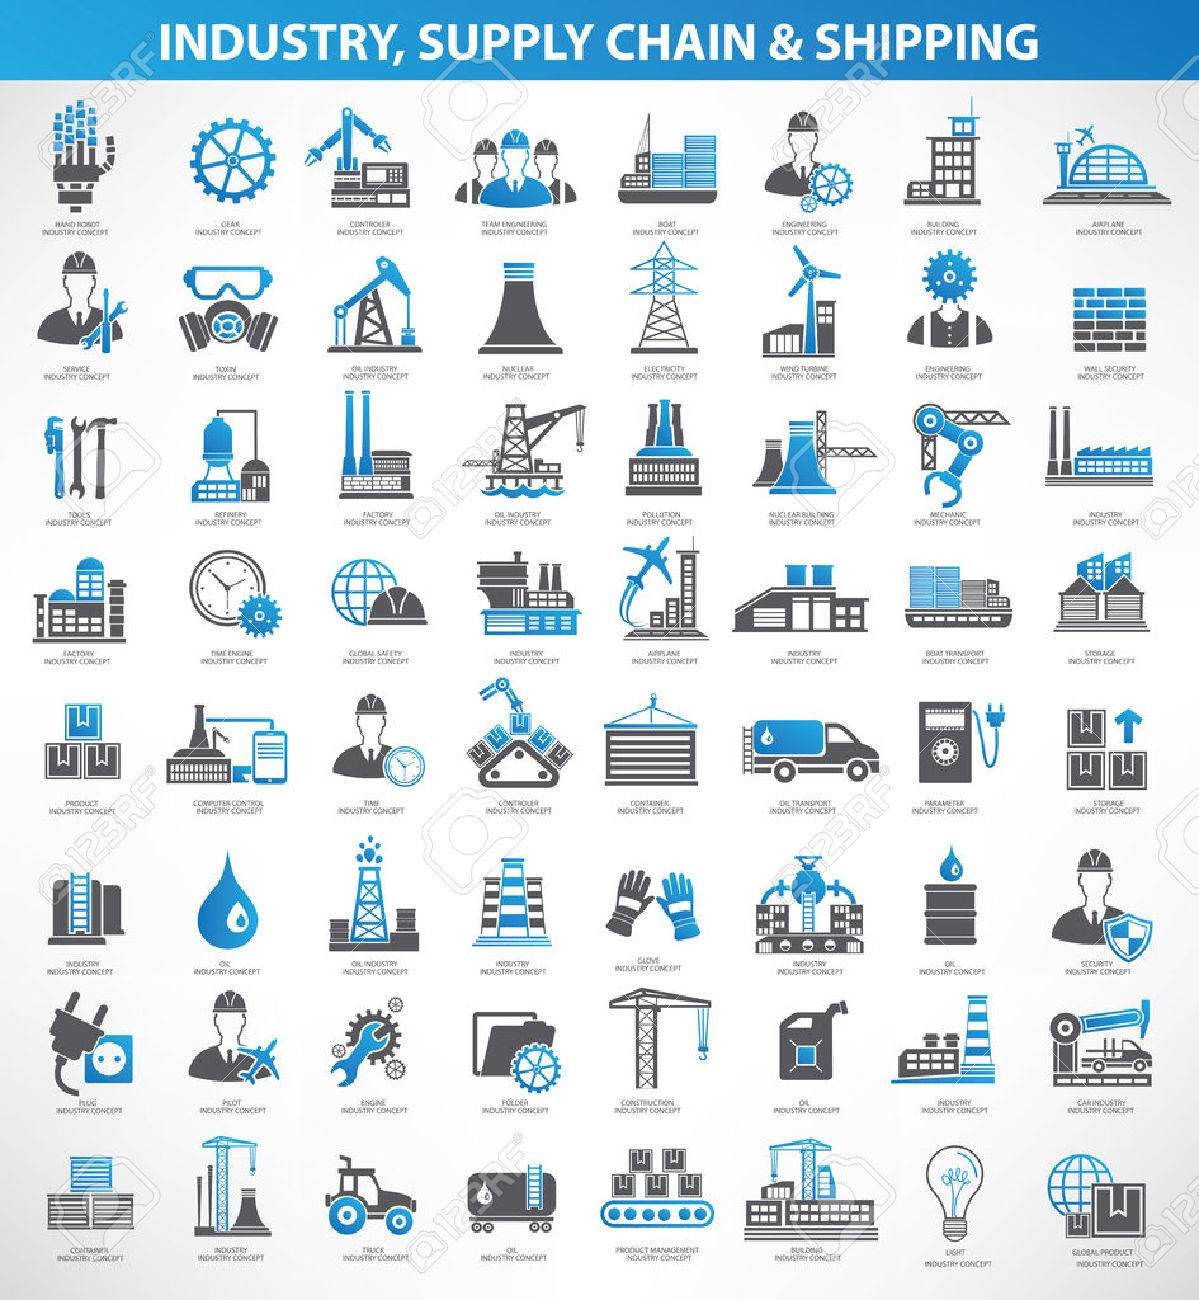 Industryconstruction and engineer icon setblue versionclean vector - 40327815